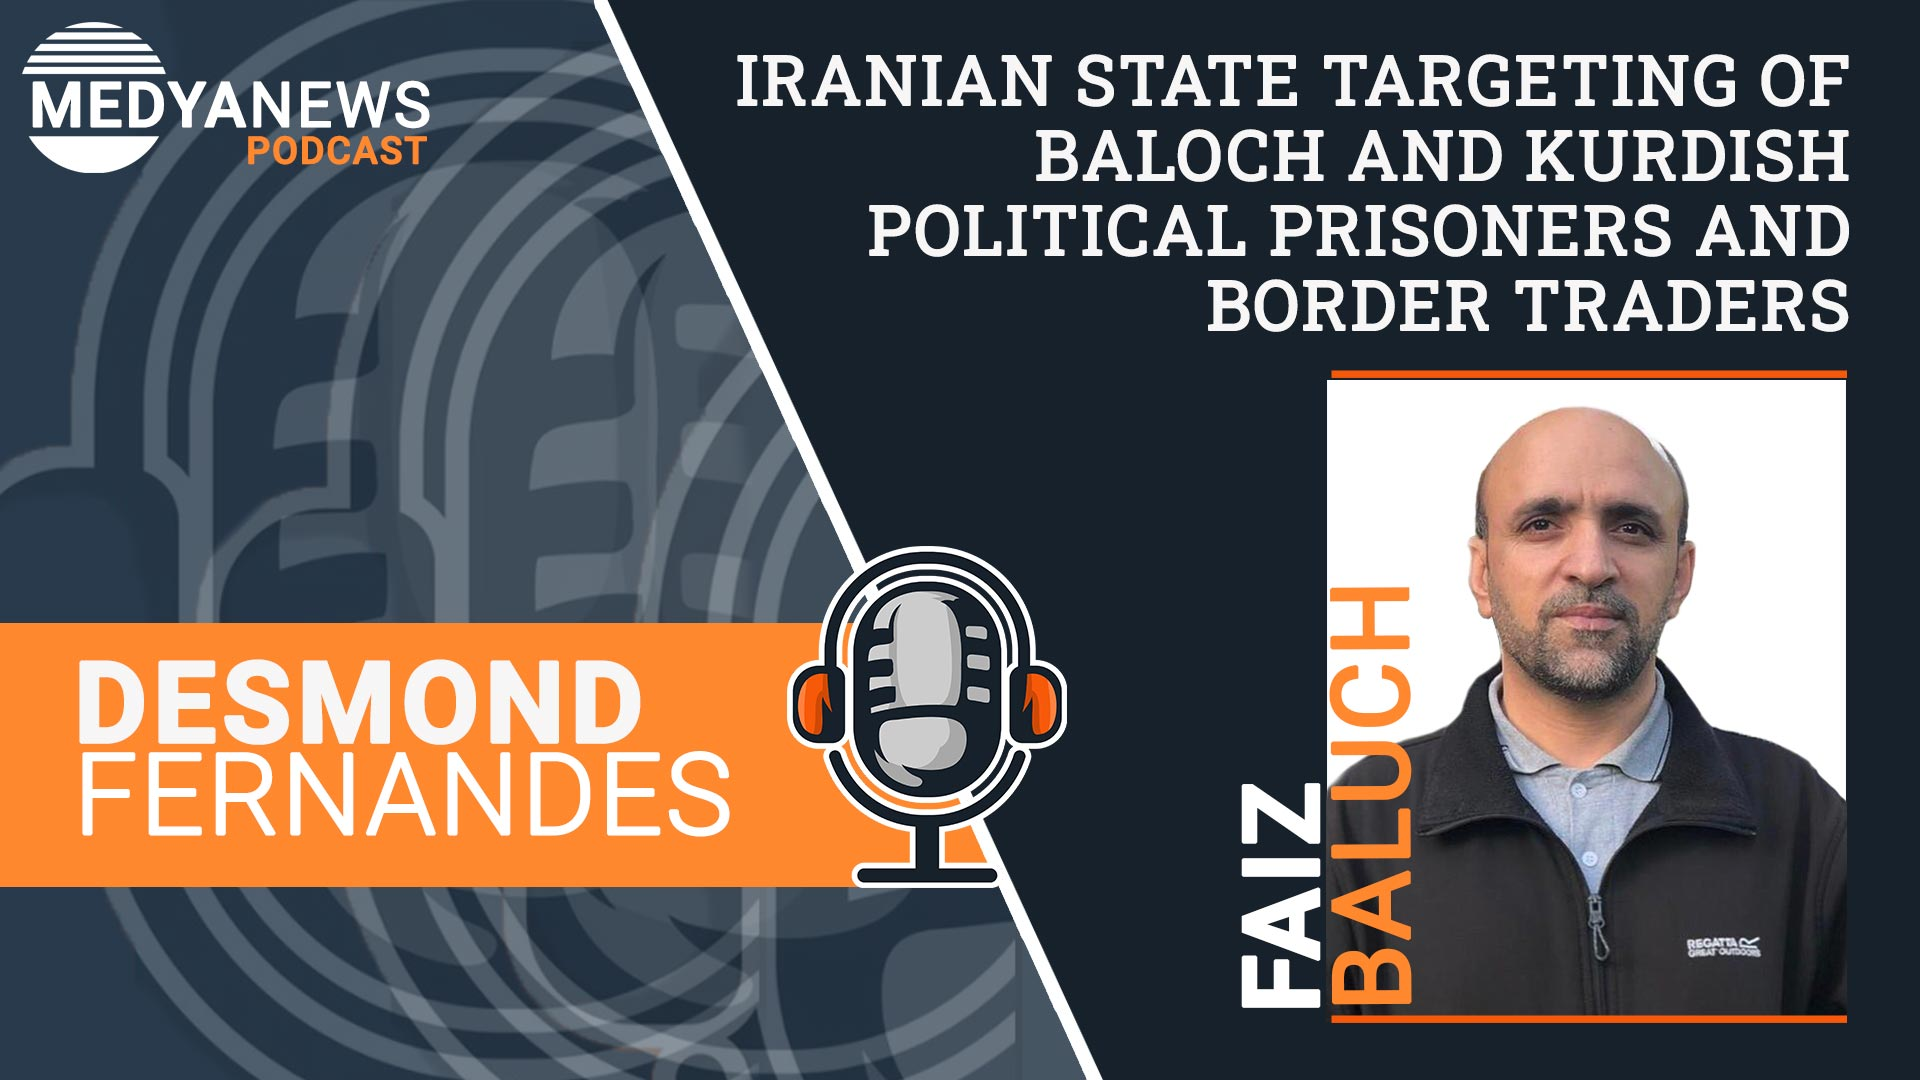 Iranian state targeting of Baloch and Kurdish political prisoners and border traders